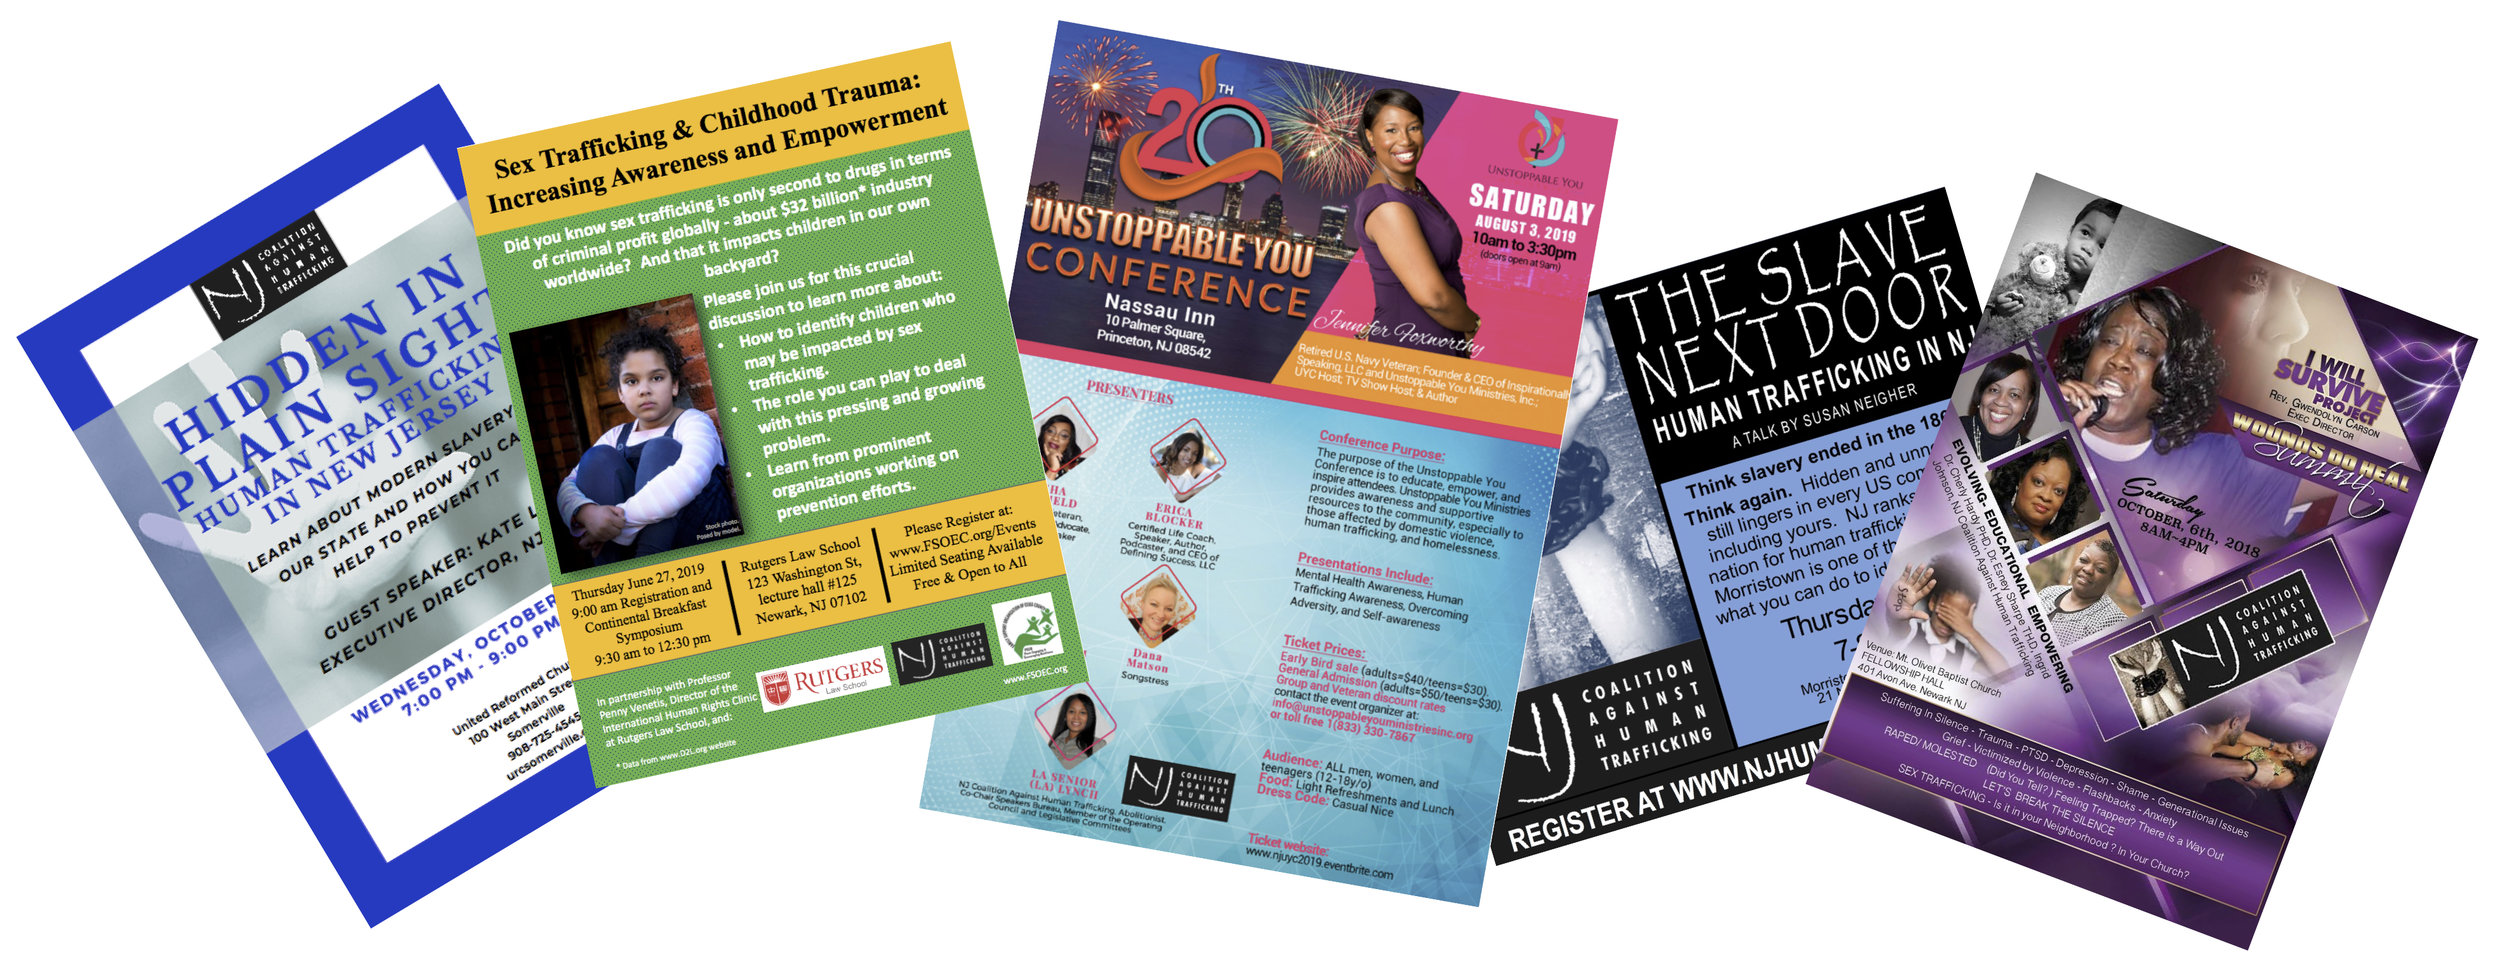 Speakers Bureau Flyers Image.jpg